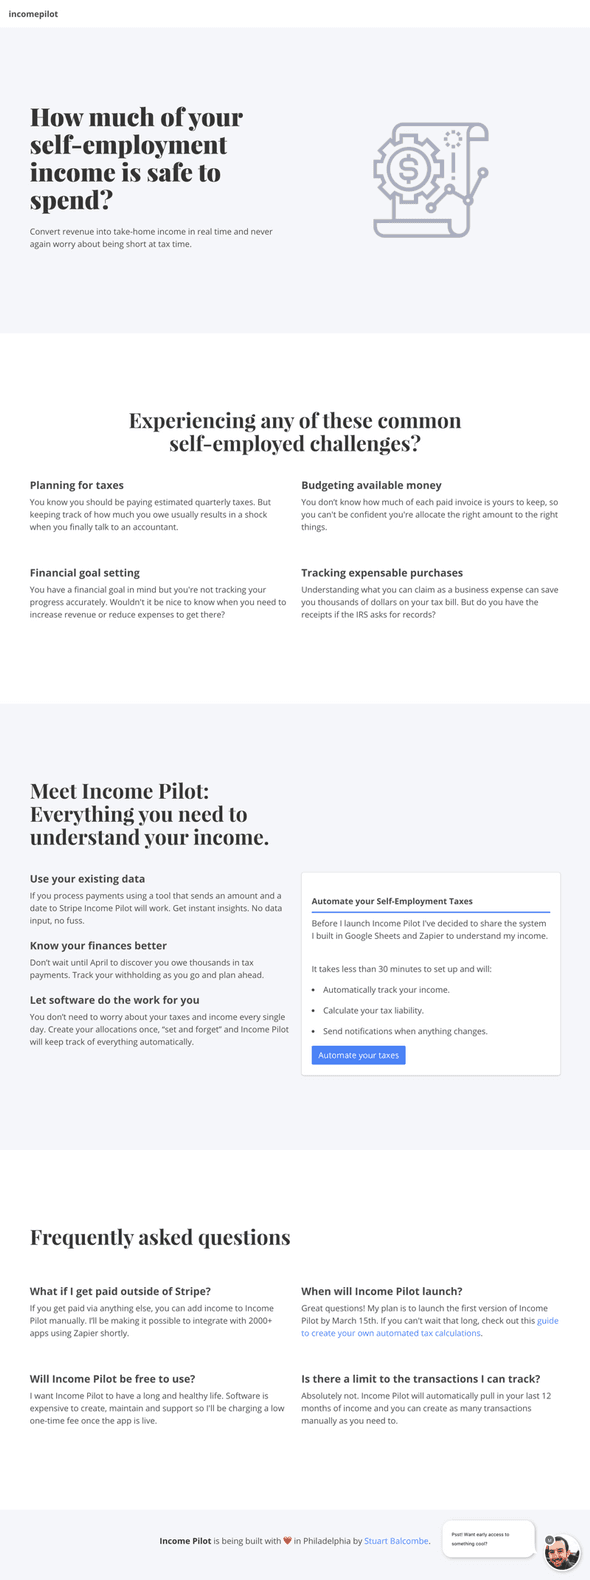 Landing page design for MyIncomePilot